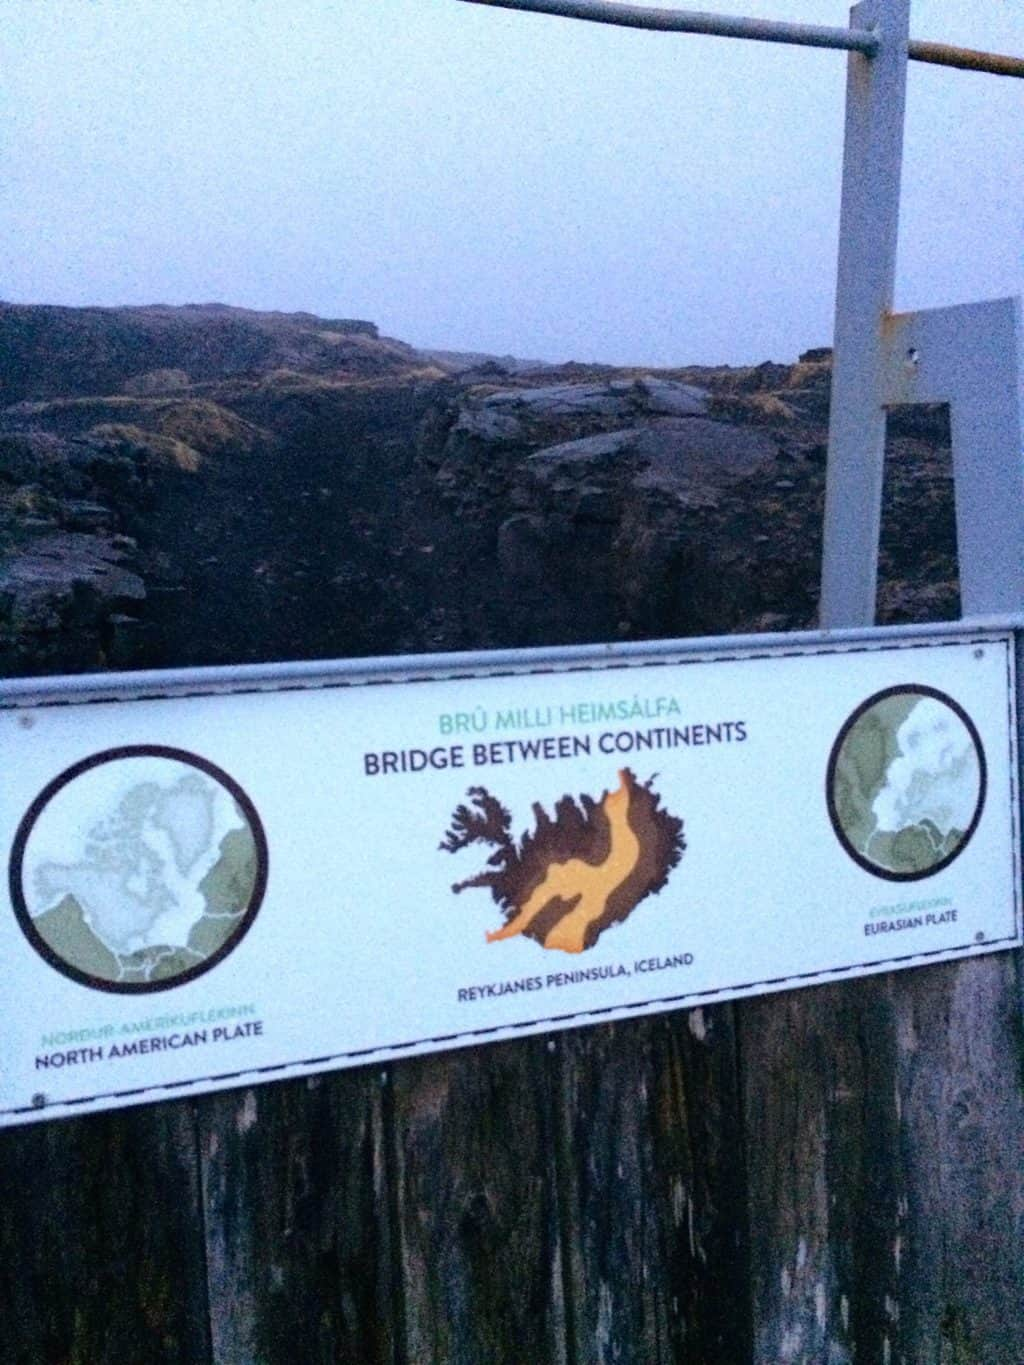 Sandvik tectonic plates sign